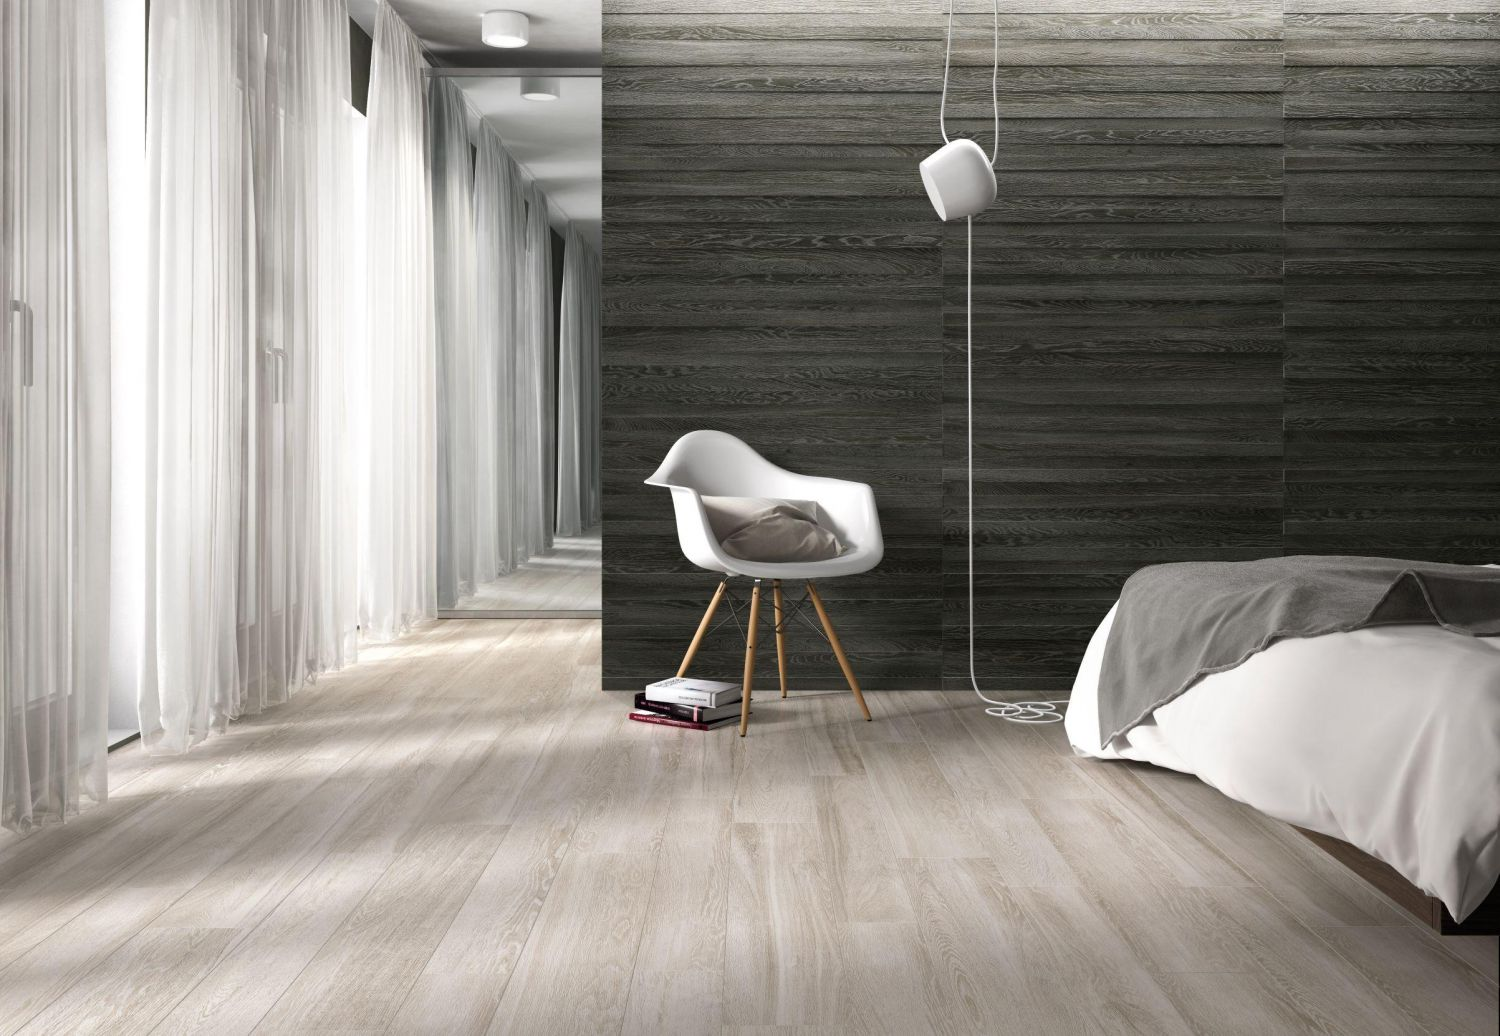 Click to enlarge image AMB_04_CAMERA_SteamWood_CERDISA_PearlWhite_Charcoal_HR.jpg